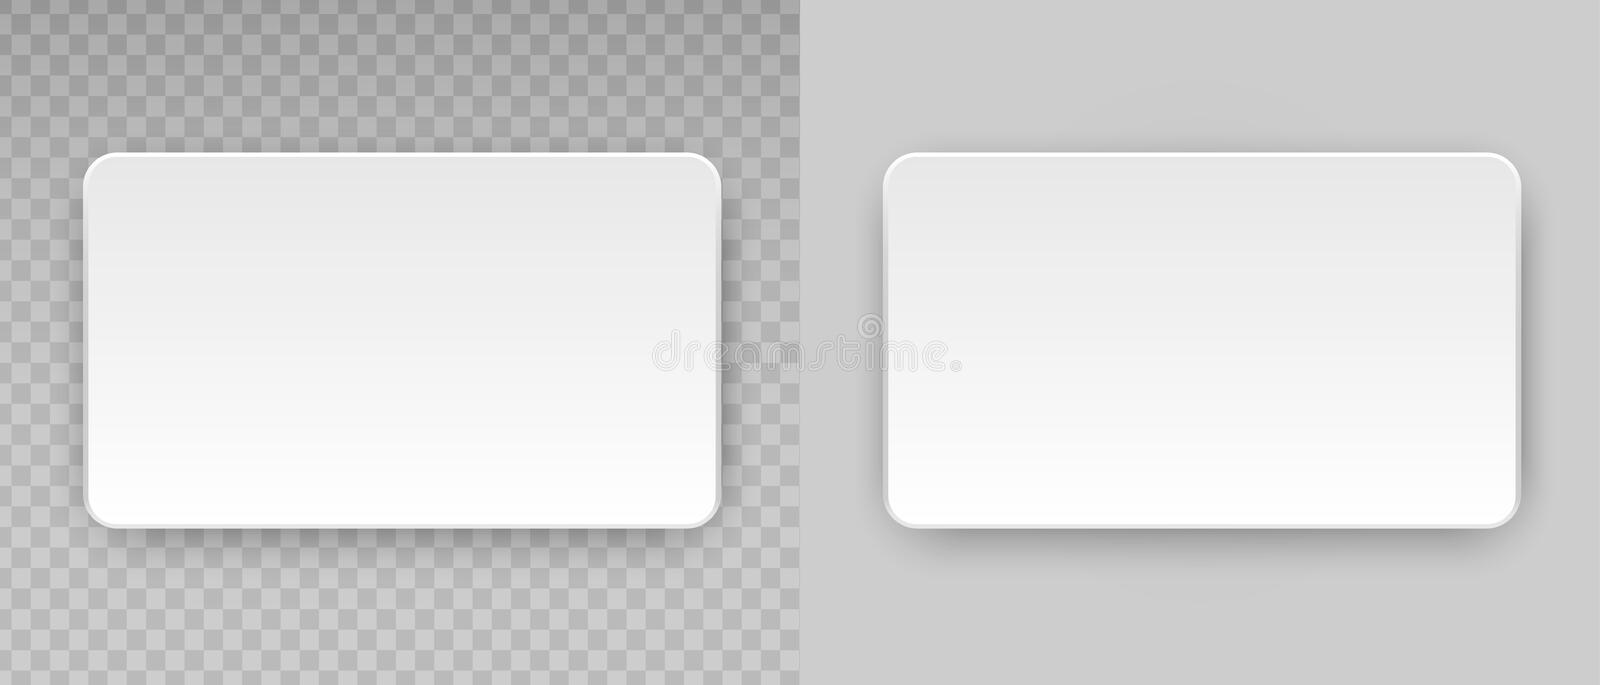 White blank horizontal plastic paper business card or name credit download white blank horizontal plastic paper business card or name credit card template on transparent accmission Image collections